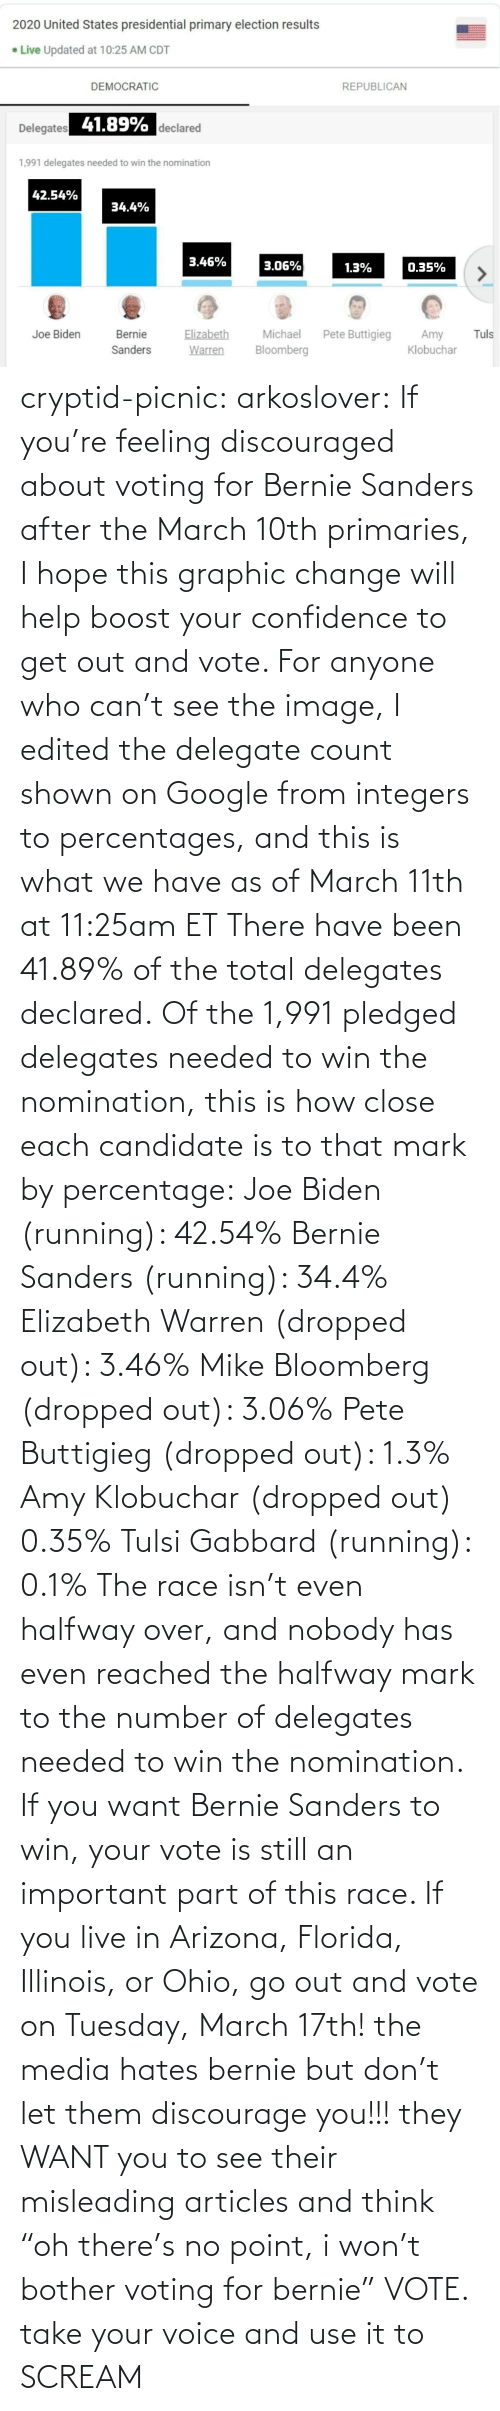 "The 1: cryptid-picnic: arkoslover:   If you're feeling discouraged about voting for Bernie Sanders after the March 10th primaries, I hope this graphic change will help boost your confidence to get out and vote. For anyone who can't see the image, I edited the delegate count shown on Google from integers to percentages, and this is what we have as of March 11th at 11:25am ET There have been 41.89% of the total delegates declared. Of the 1,991 pledged delegates needed to win the nomination, this is how close each candidate is to that mark by percentage: Joe Biden (running): 42.54% Bernie Sanders (running): 34.4% Elizabeth Warren (dropped out): 3.46% Mike Bloomberg (dropped out): 3.06% Pete Buttigieg (dropped out): 1.3% Amy Klobuchar (dropped out) 0.35% Tulsi Gabbard (running): 0.1% The race isn't even halfway over, and nobody has even reached the halfway mark to the number of delegates needed to win the nomination. If you want Bernie Sanders to win, your vote is still an important part of this race. If you live in Arizona, Florida, Illinois, or Ohio, go out and vote on Tuesday, March 17th!    the media hates bernie but don't let them discourage you!!! they WANT you to see their misleading articles and think ""oh there's no point, i won't bother voting for bernie"" VOTE. take your voice and use it to SCREAM"